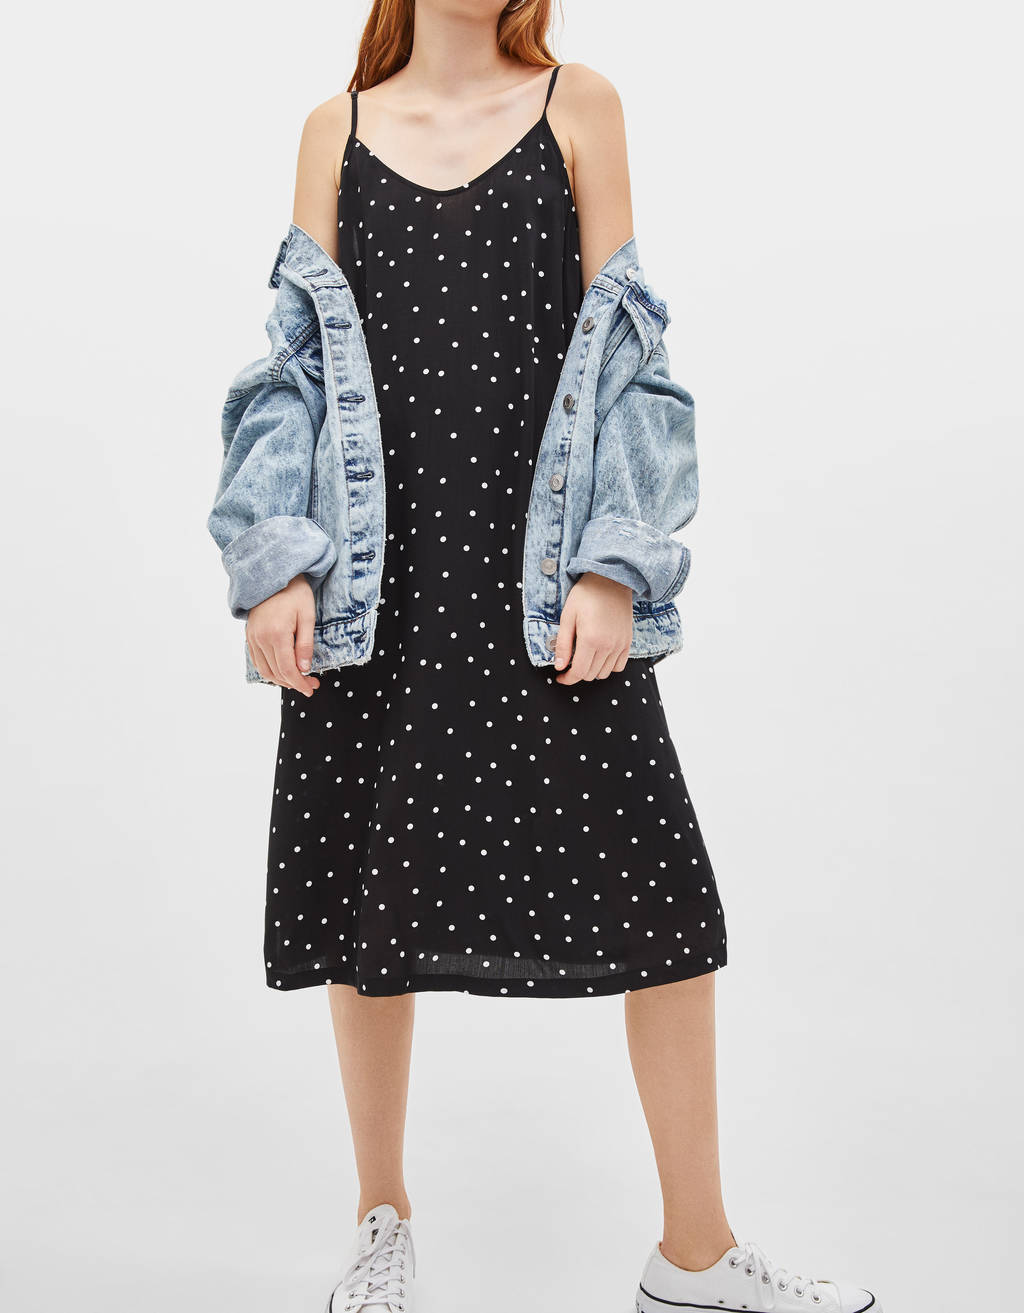 f2751eee04 Dresses - COLLECTION - WOMEN - Bershka United States